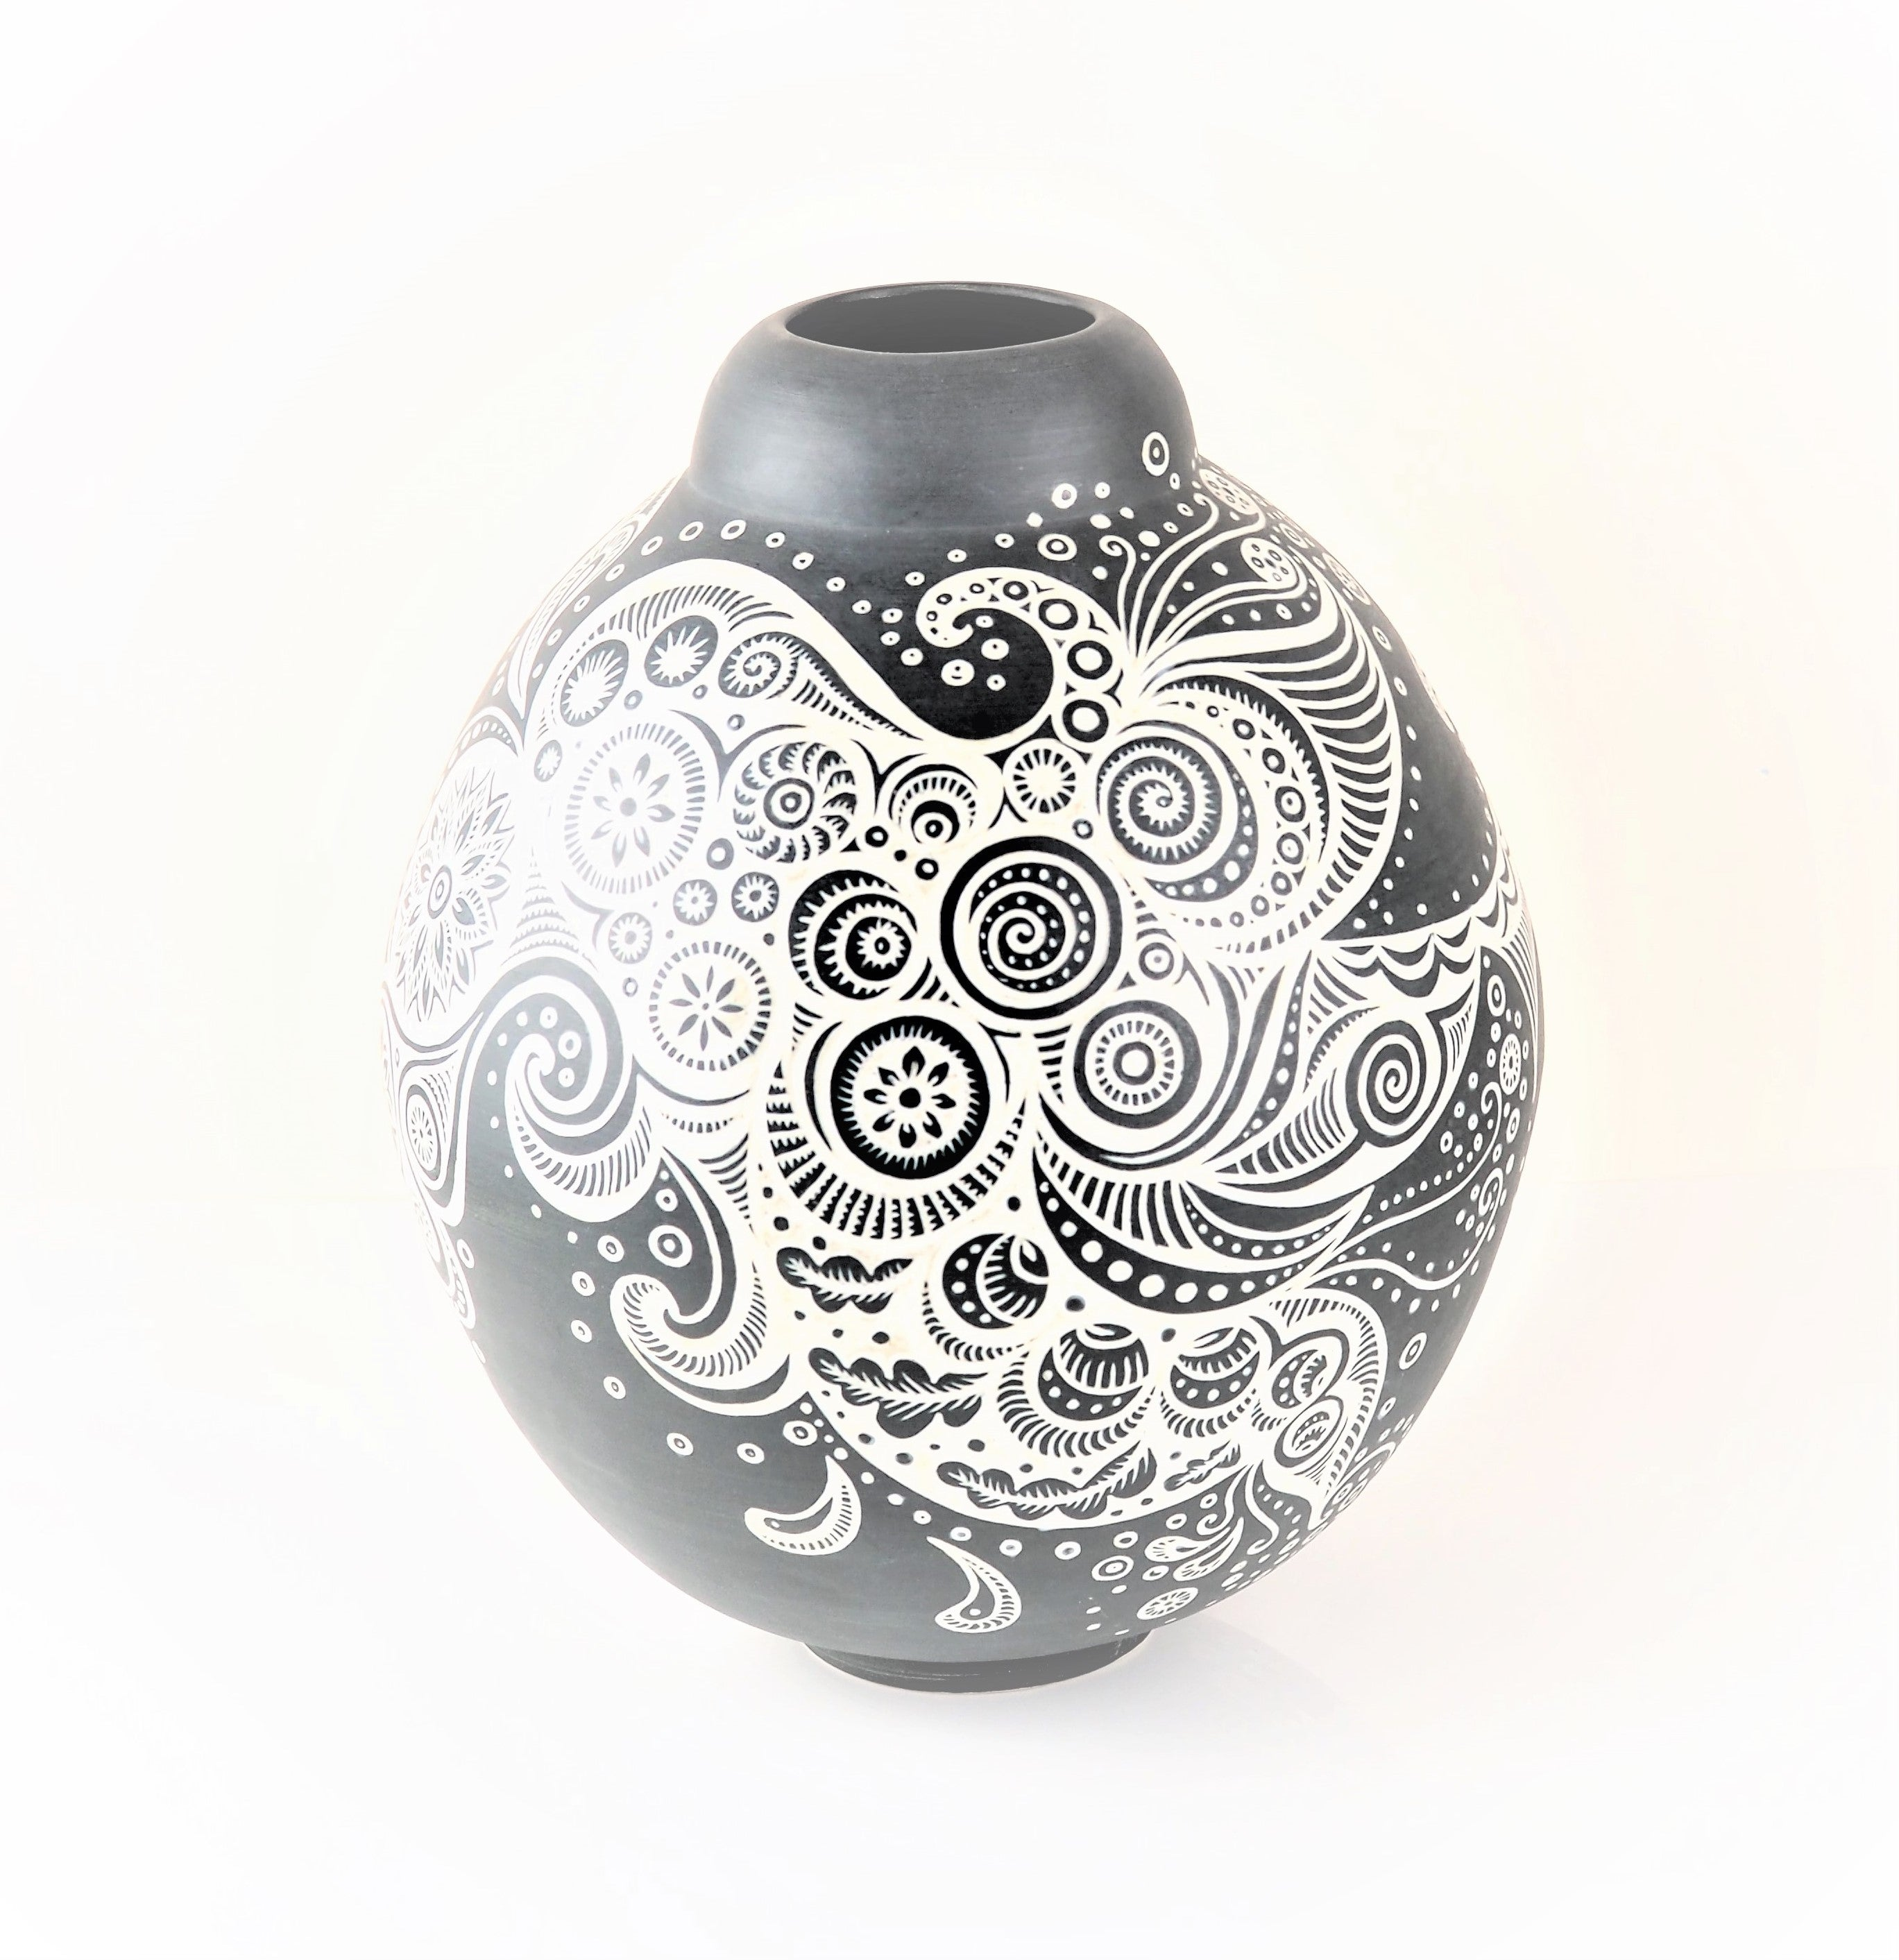 Tingay, Gregory – Dark Grey Slip Vessel | Gregory Tingay | Primavera Gallery